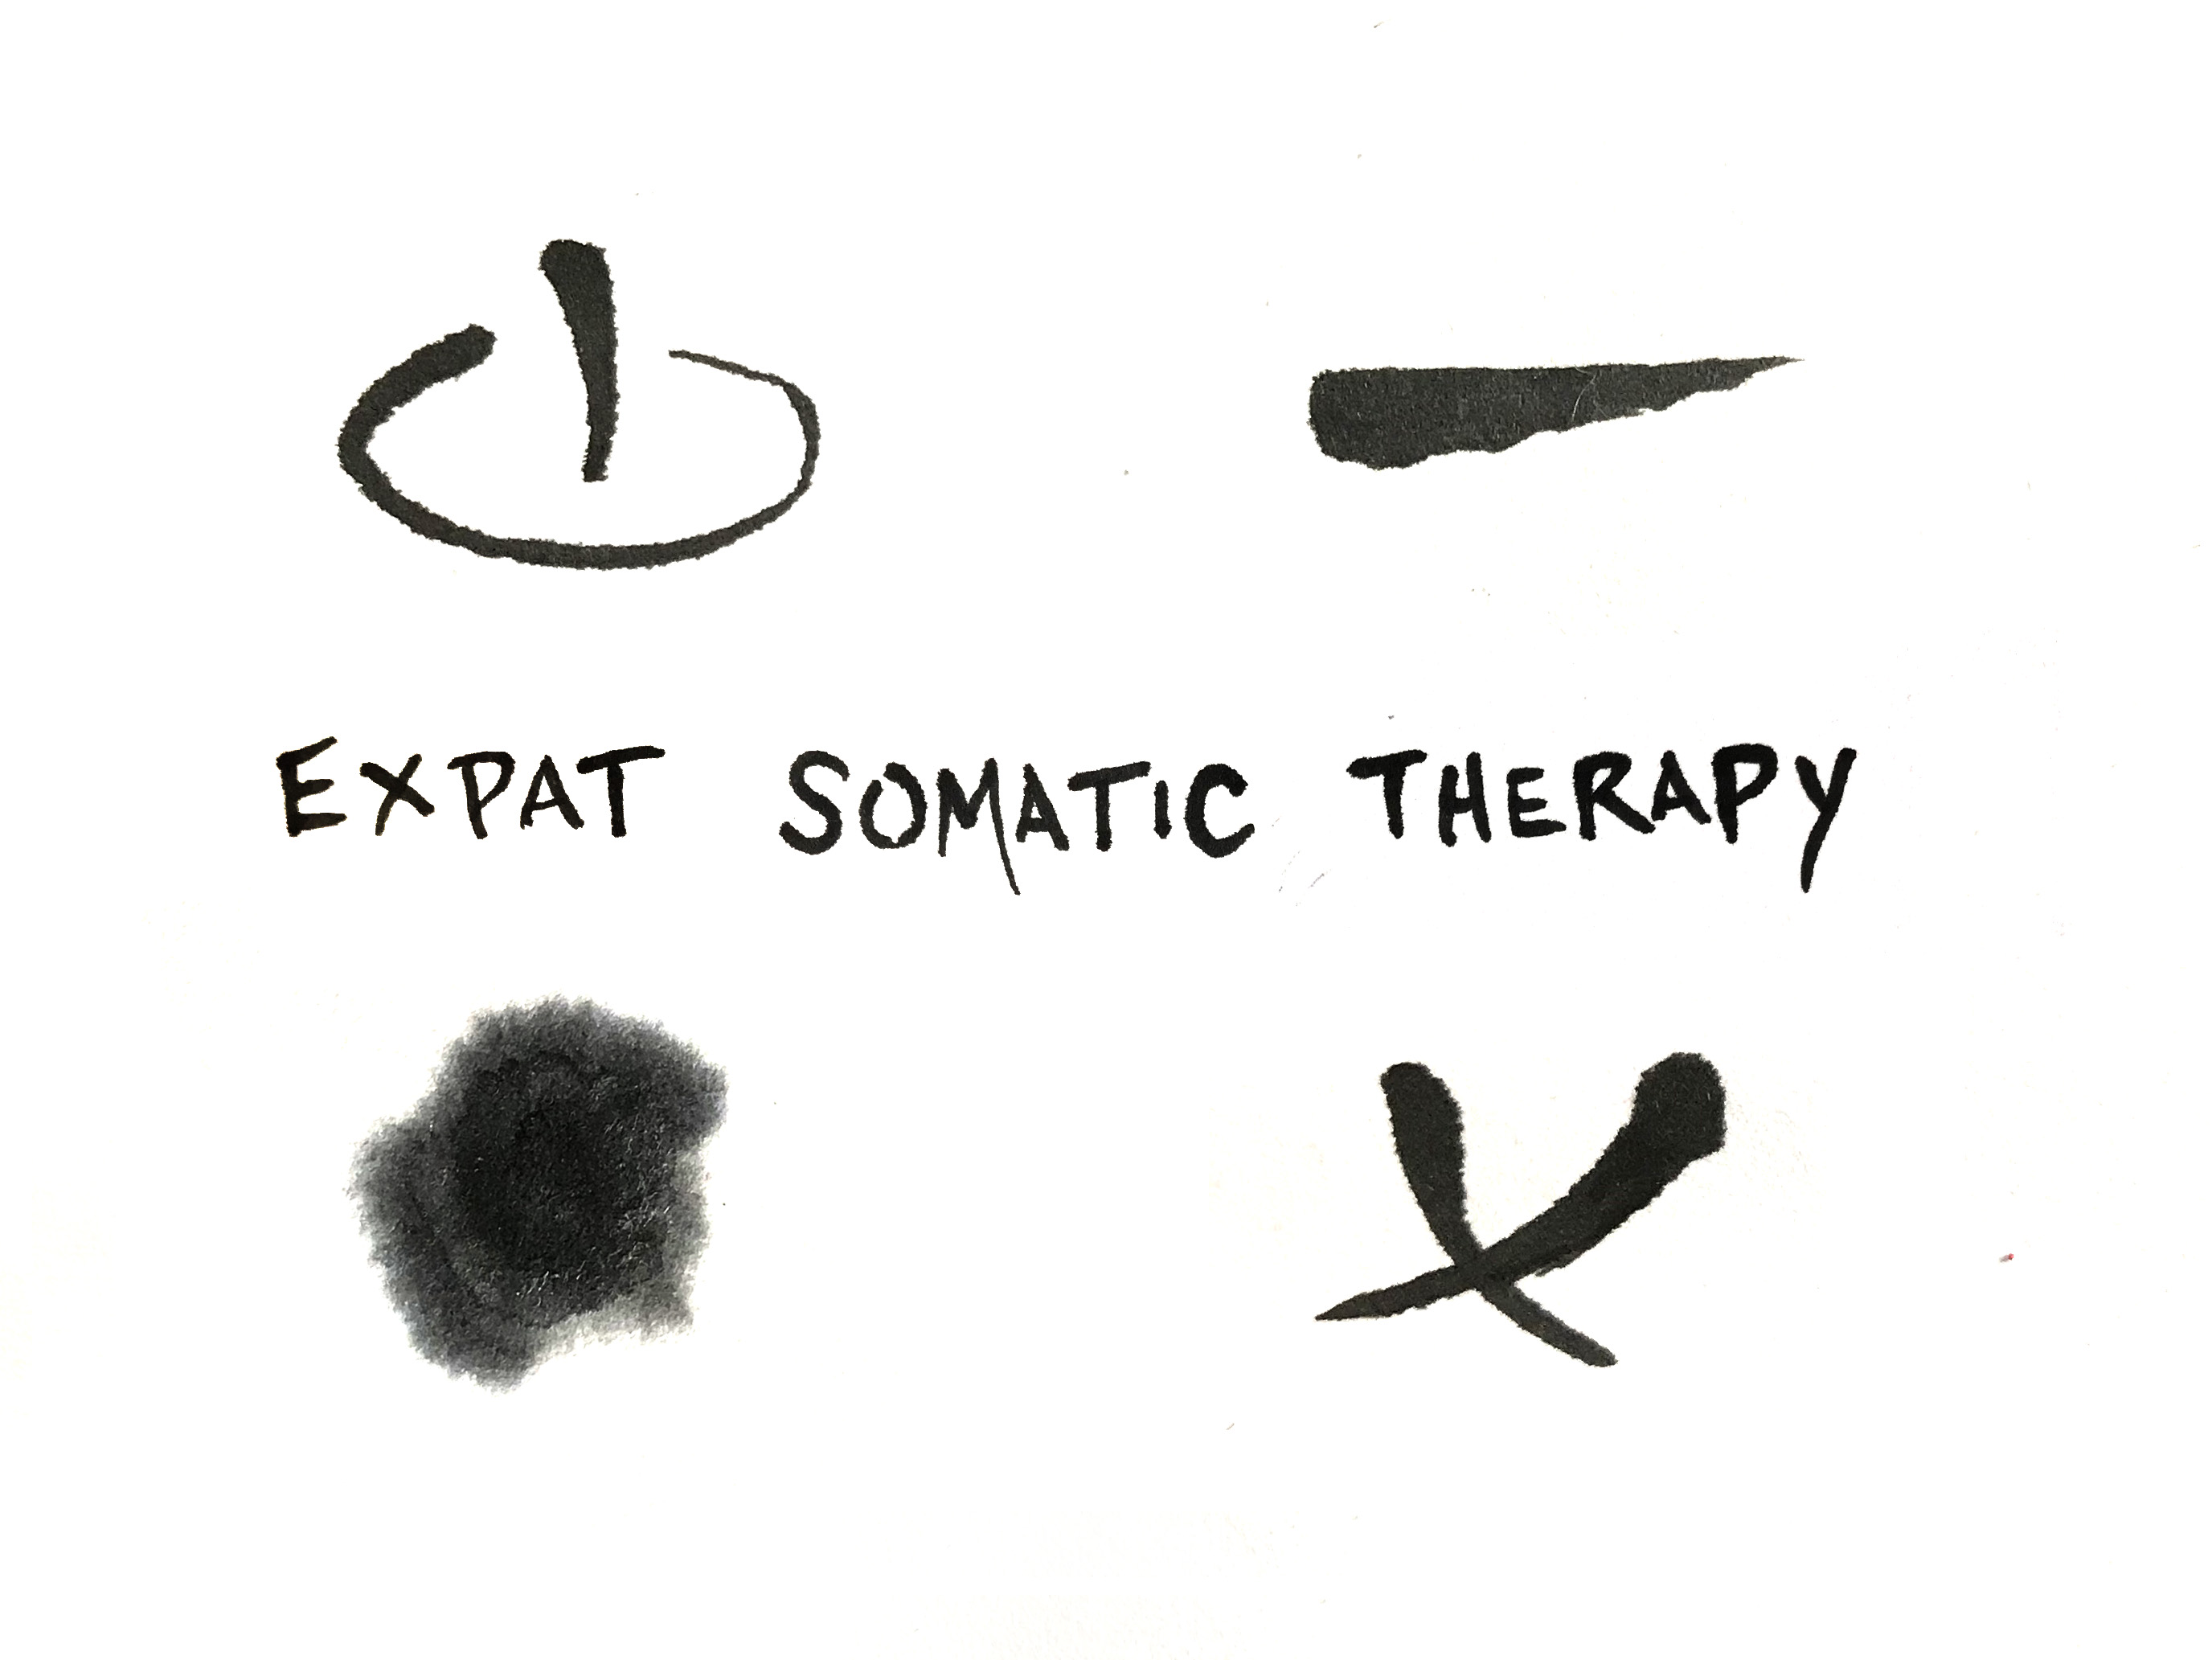 expat somatic therapy The Hague